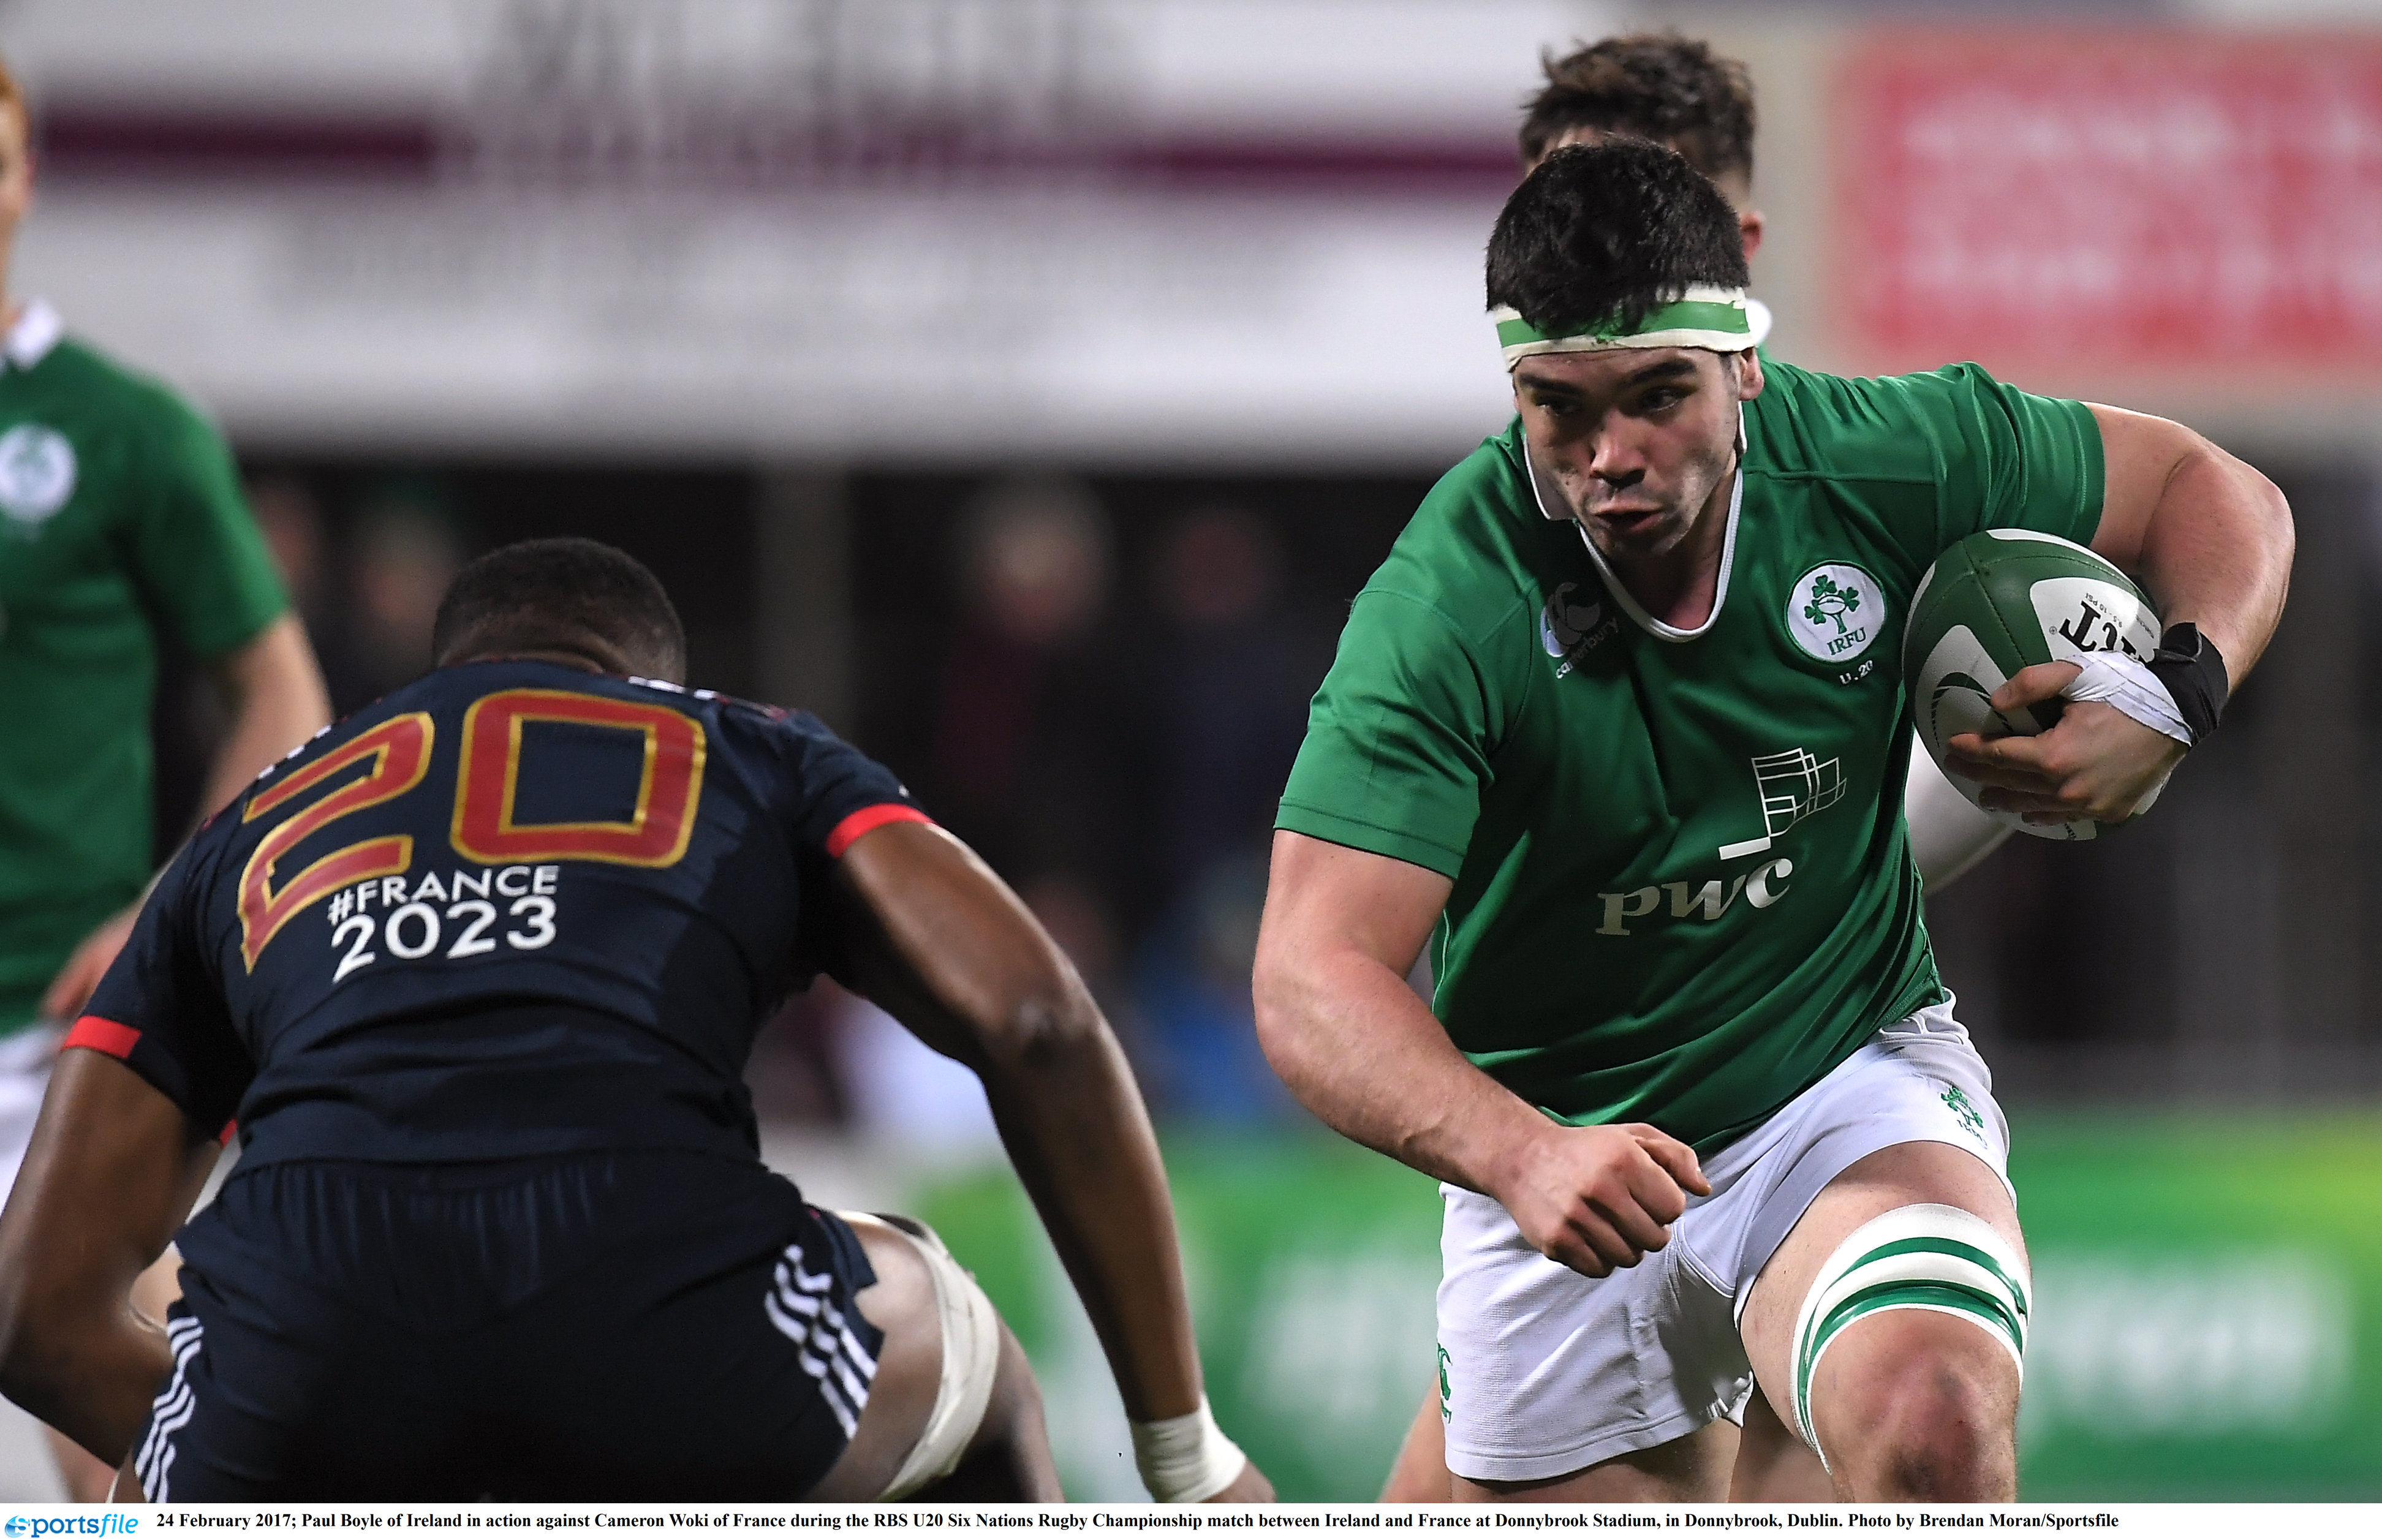 24 February 2017; Paul Boyle of Ireland in action against Cameron Woki of France during the RBS U20 Six Nations Rugby Championship match between Ireland and France at Donnybrook Stadium, in Donnybrook, Dublin. Photo by Brendan Moran/Sportsfile